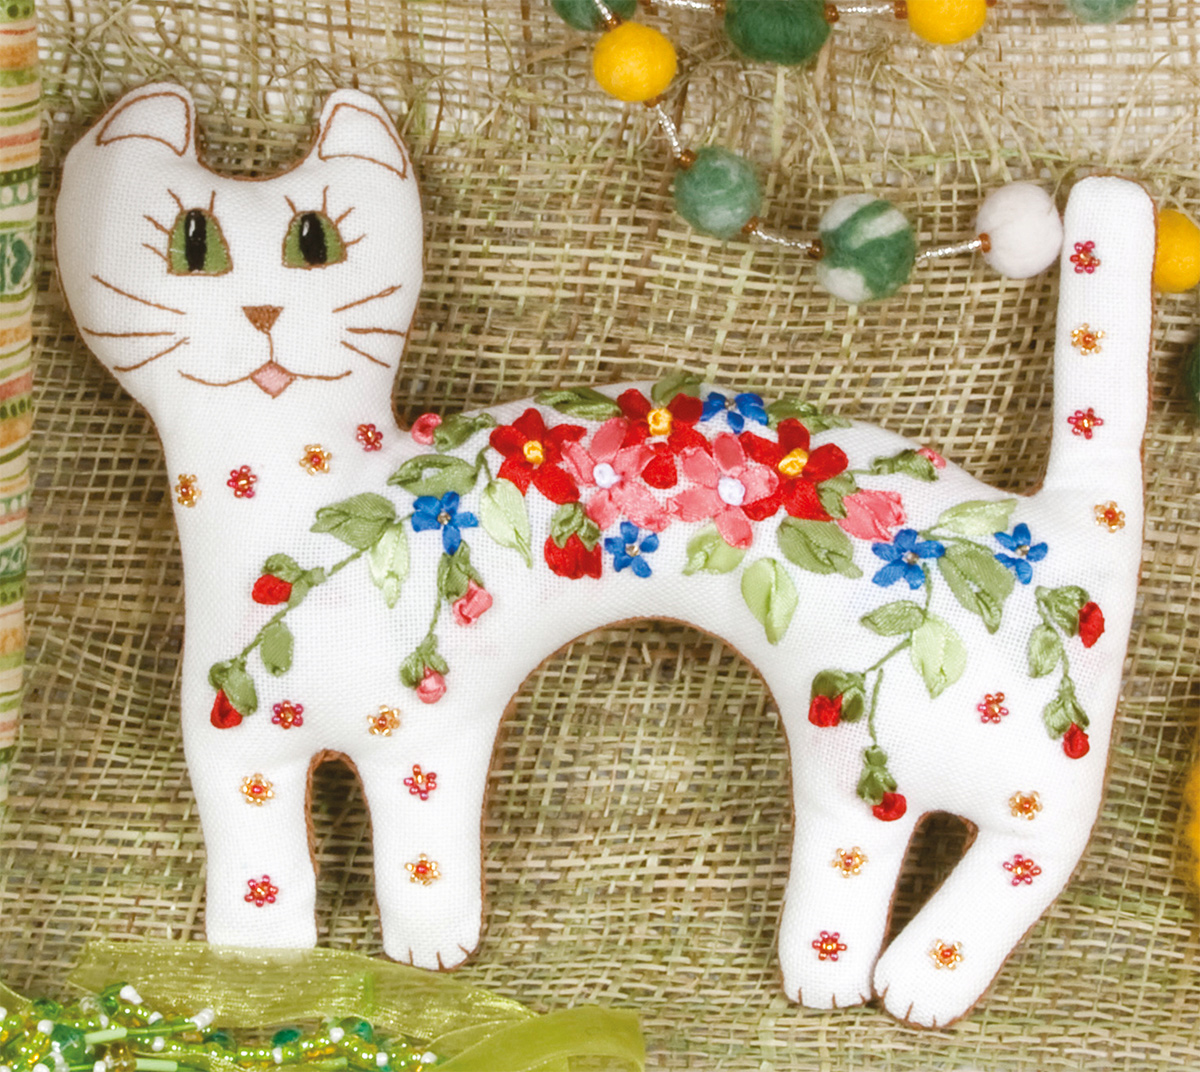 Embroidery kits PANNA IG-1178 Sweet Cat